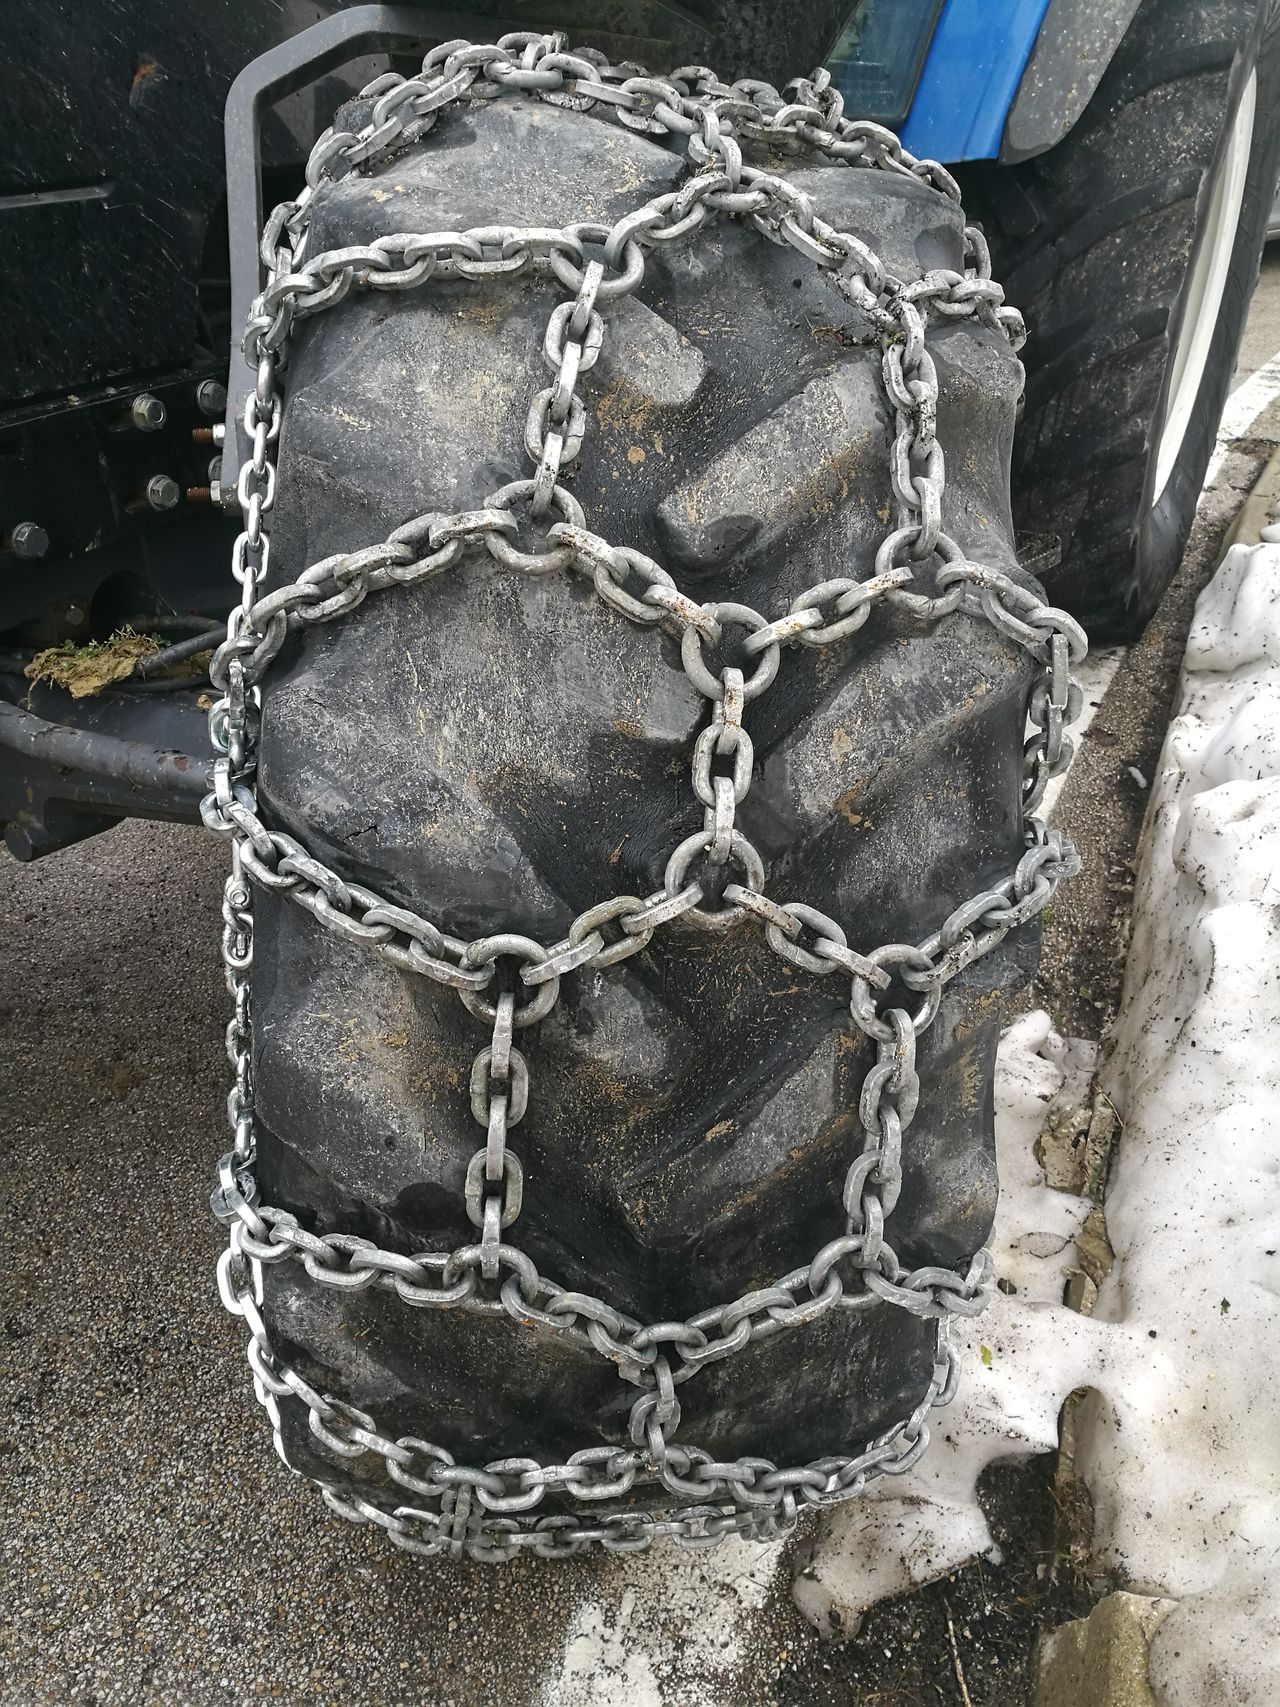 Snow chains on a tractor tire BIG Chains Grip Large Pneumatic Rubber Snow Snowchains Strength Tire Tractor Tyre Winter